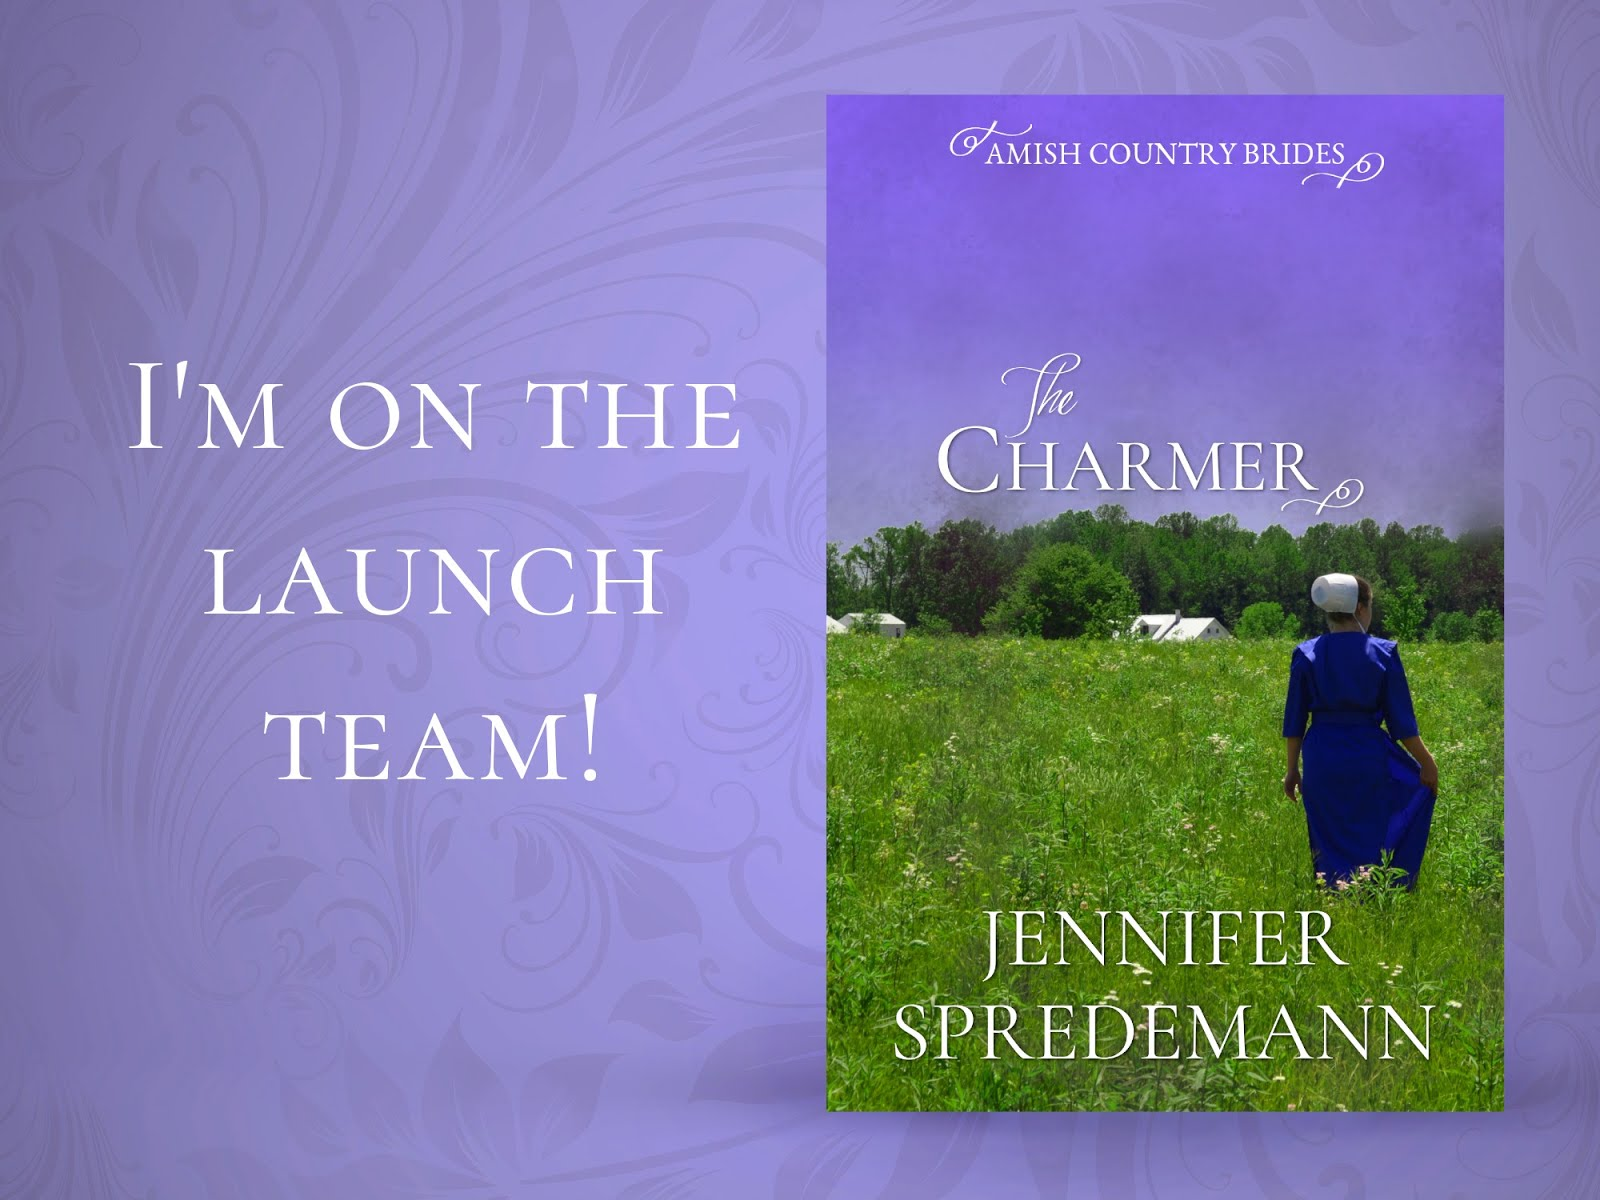 Jennifer Spredemann Launch Team